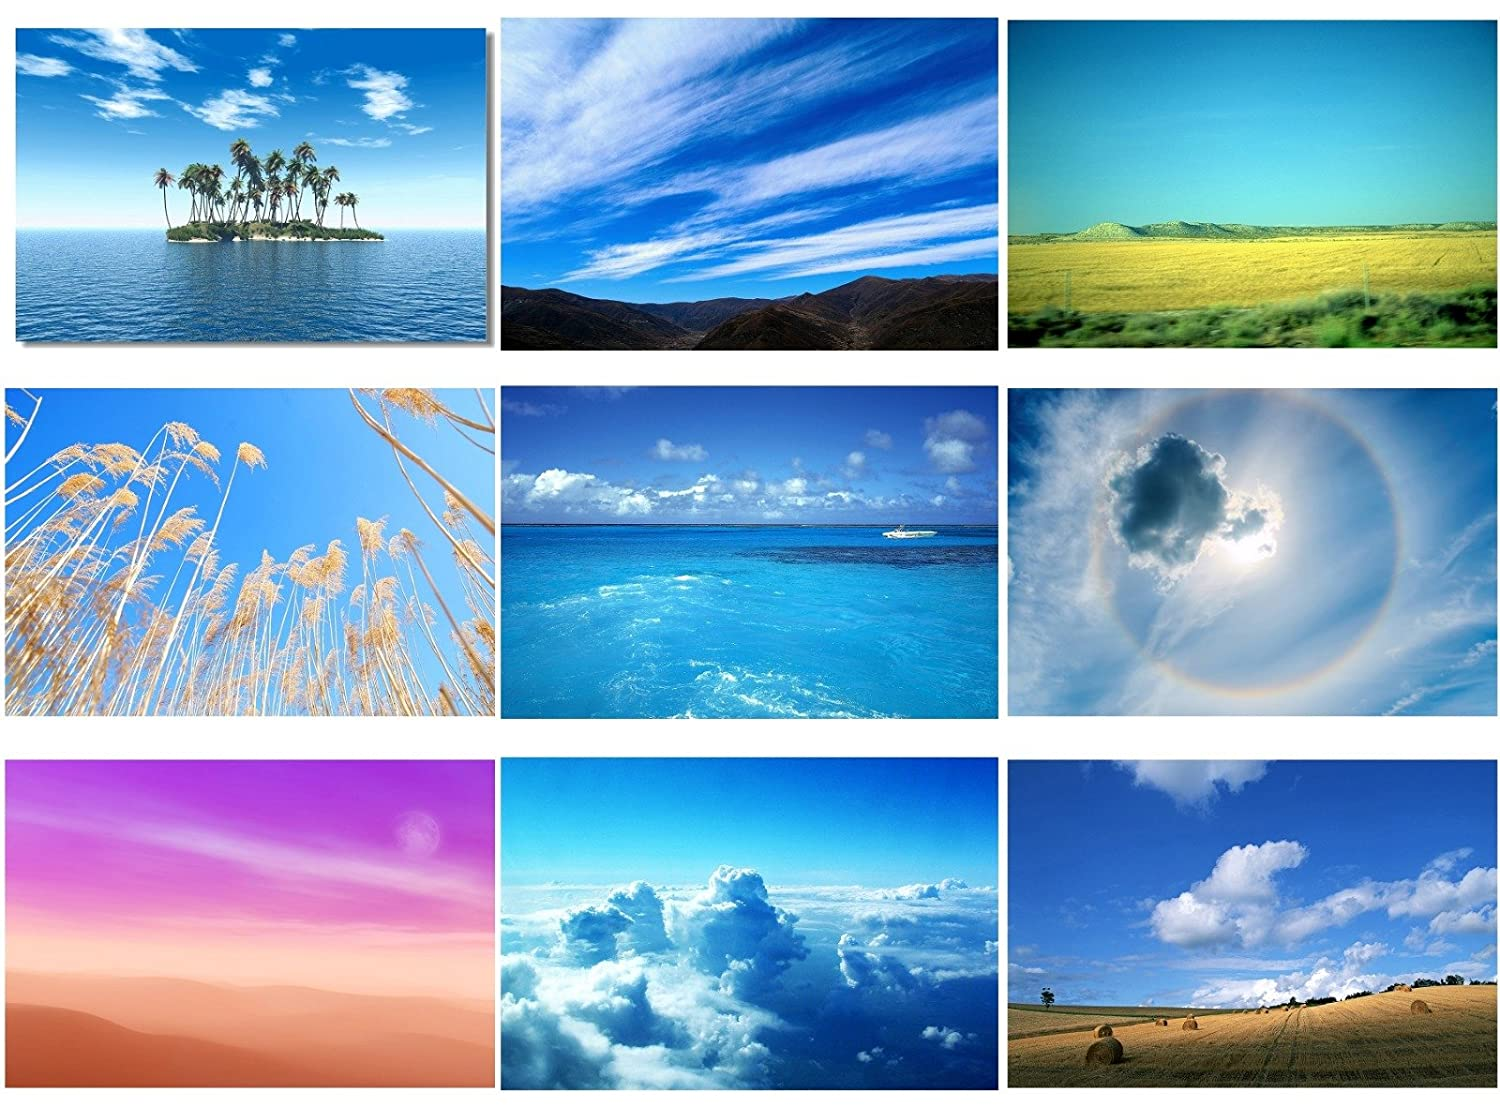 9x Poster Sky Air Cloud Sea Nature Office Room Toilets Decorate Wall Beautiful Scape Landscape View Motivational